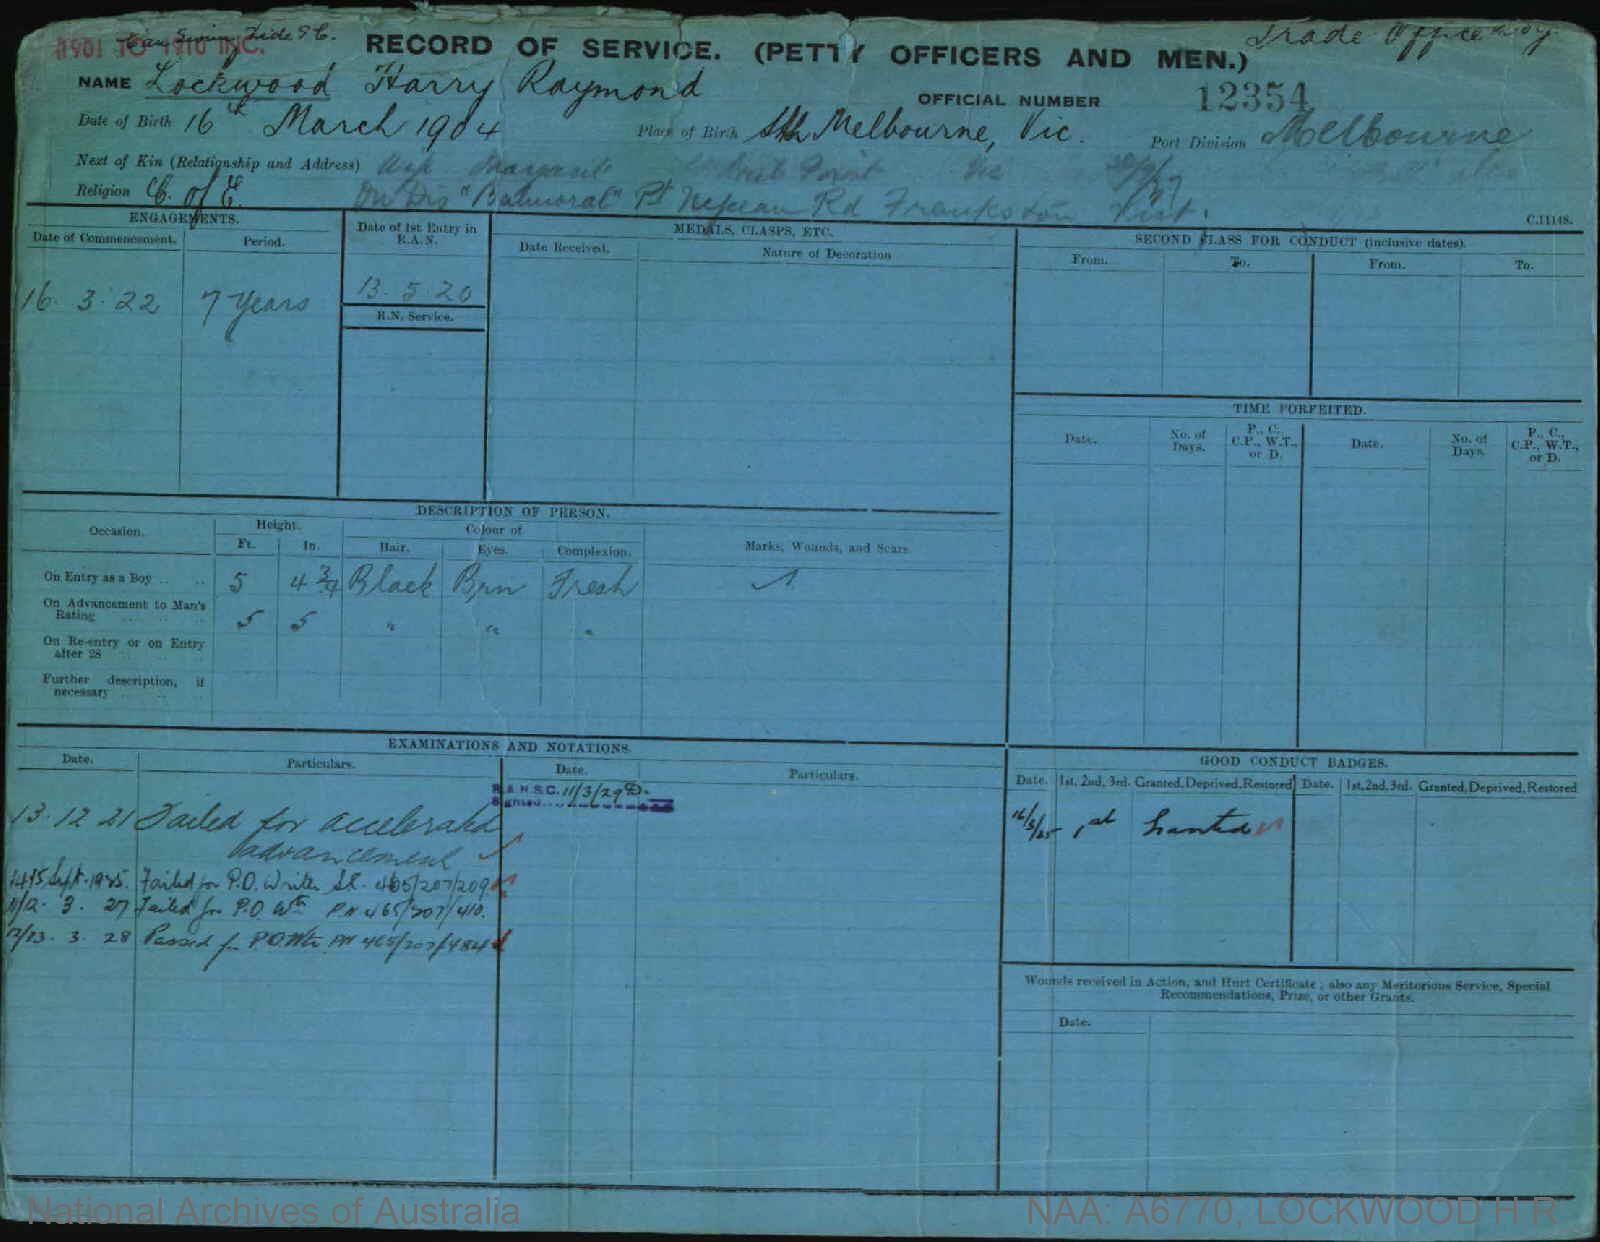 LOCKWOOD HARRY RAYMOND : Service Number - 12354 : Date of birth - 16 Mar 1904 : Place of birth - STH MELBOURNE VIC : Place of enlistment - MELBOURNE : Next of Kin - MARGARET